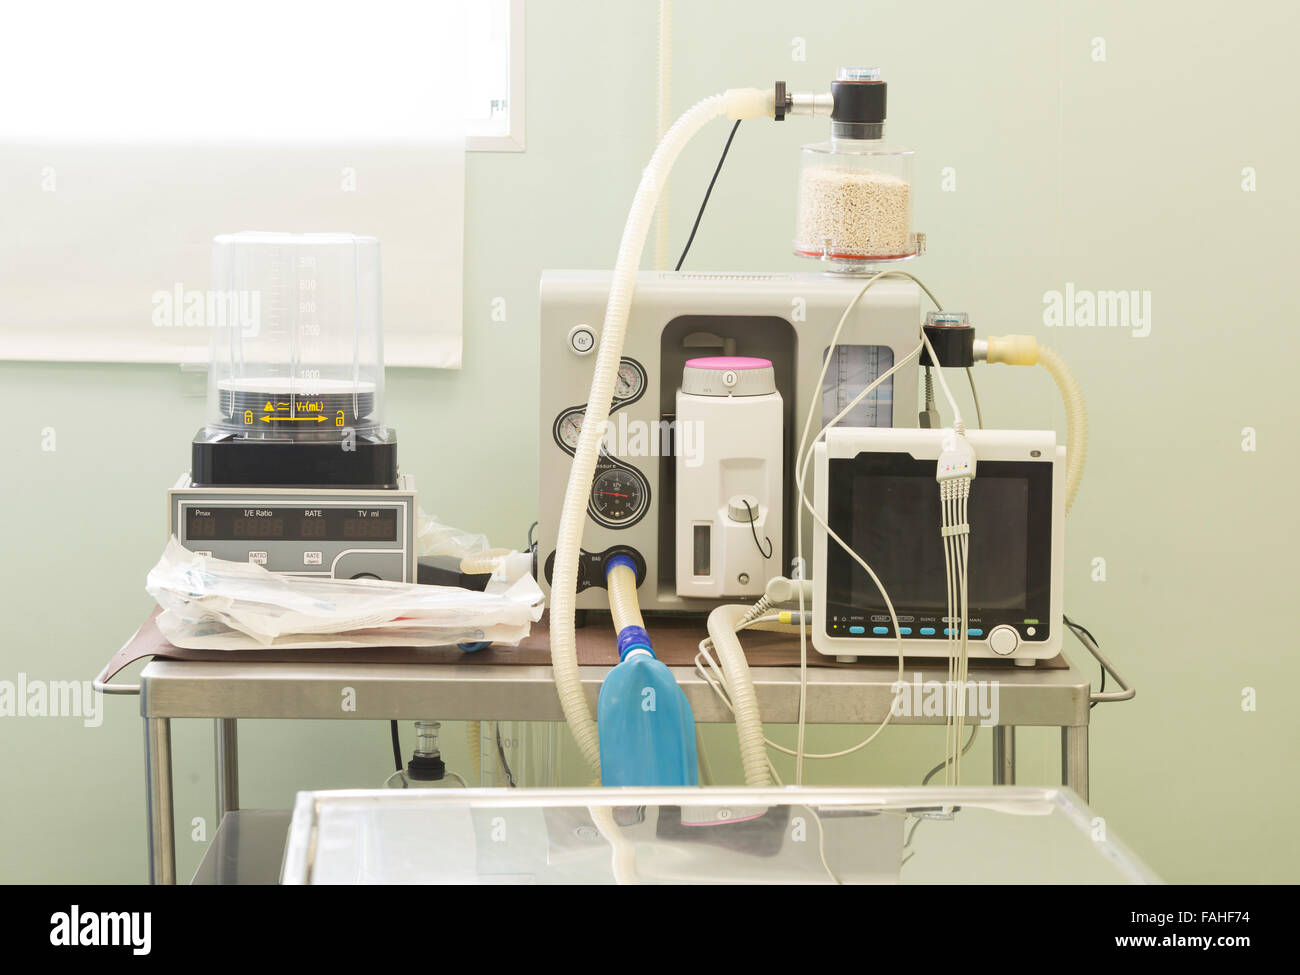 An equipment for operation of animals in an veterinary clinic. - Stock Image